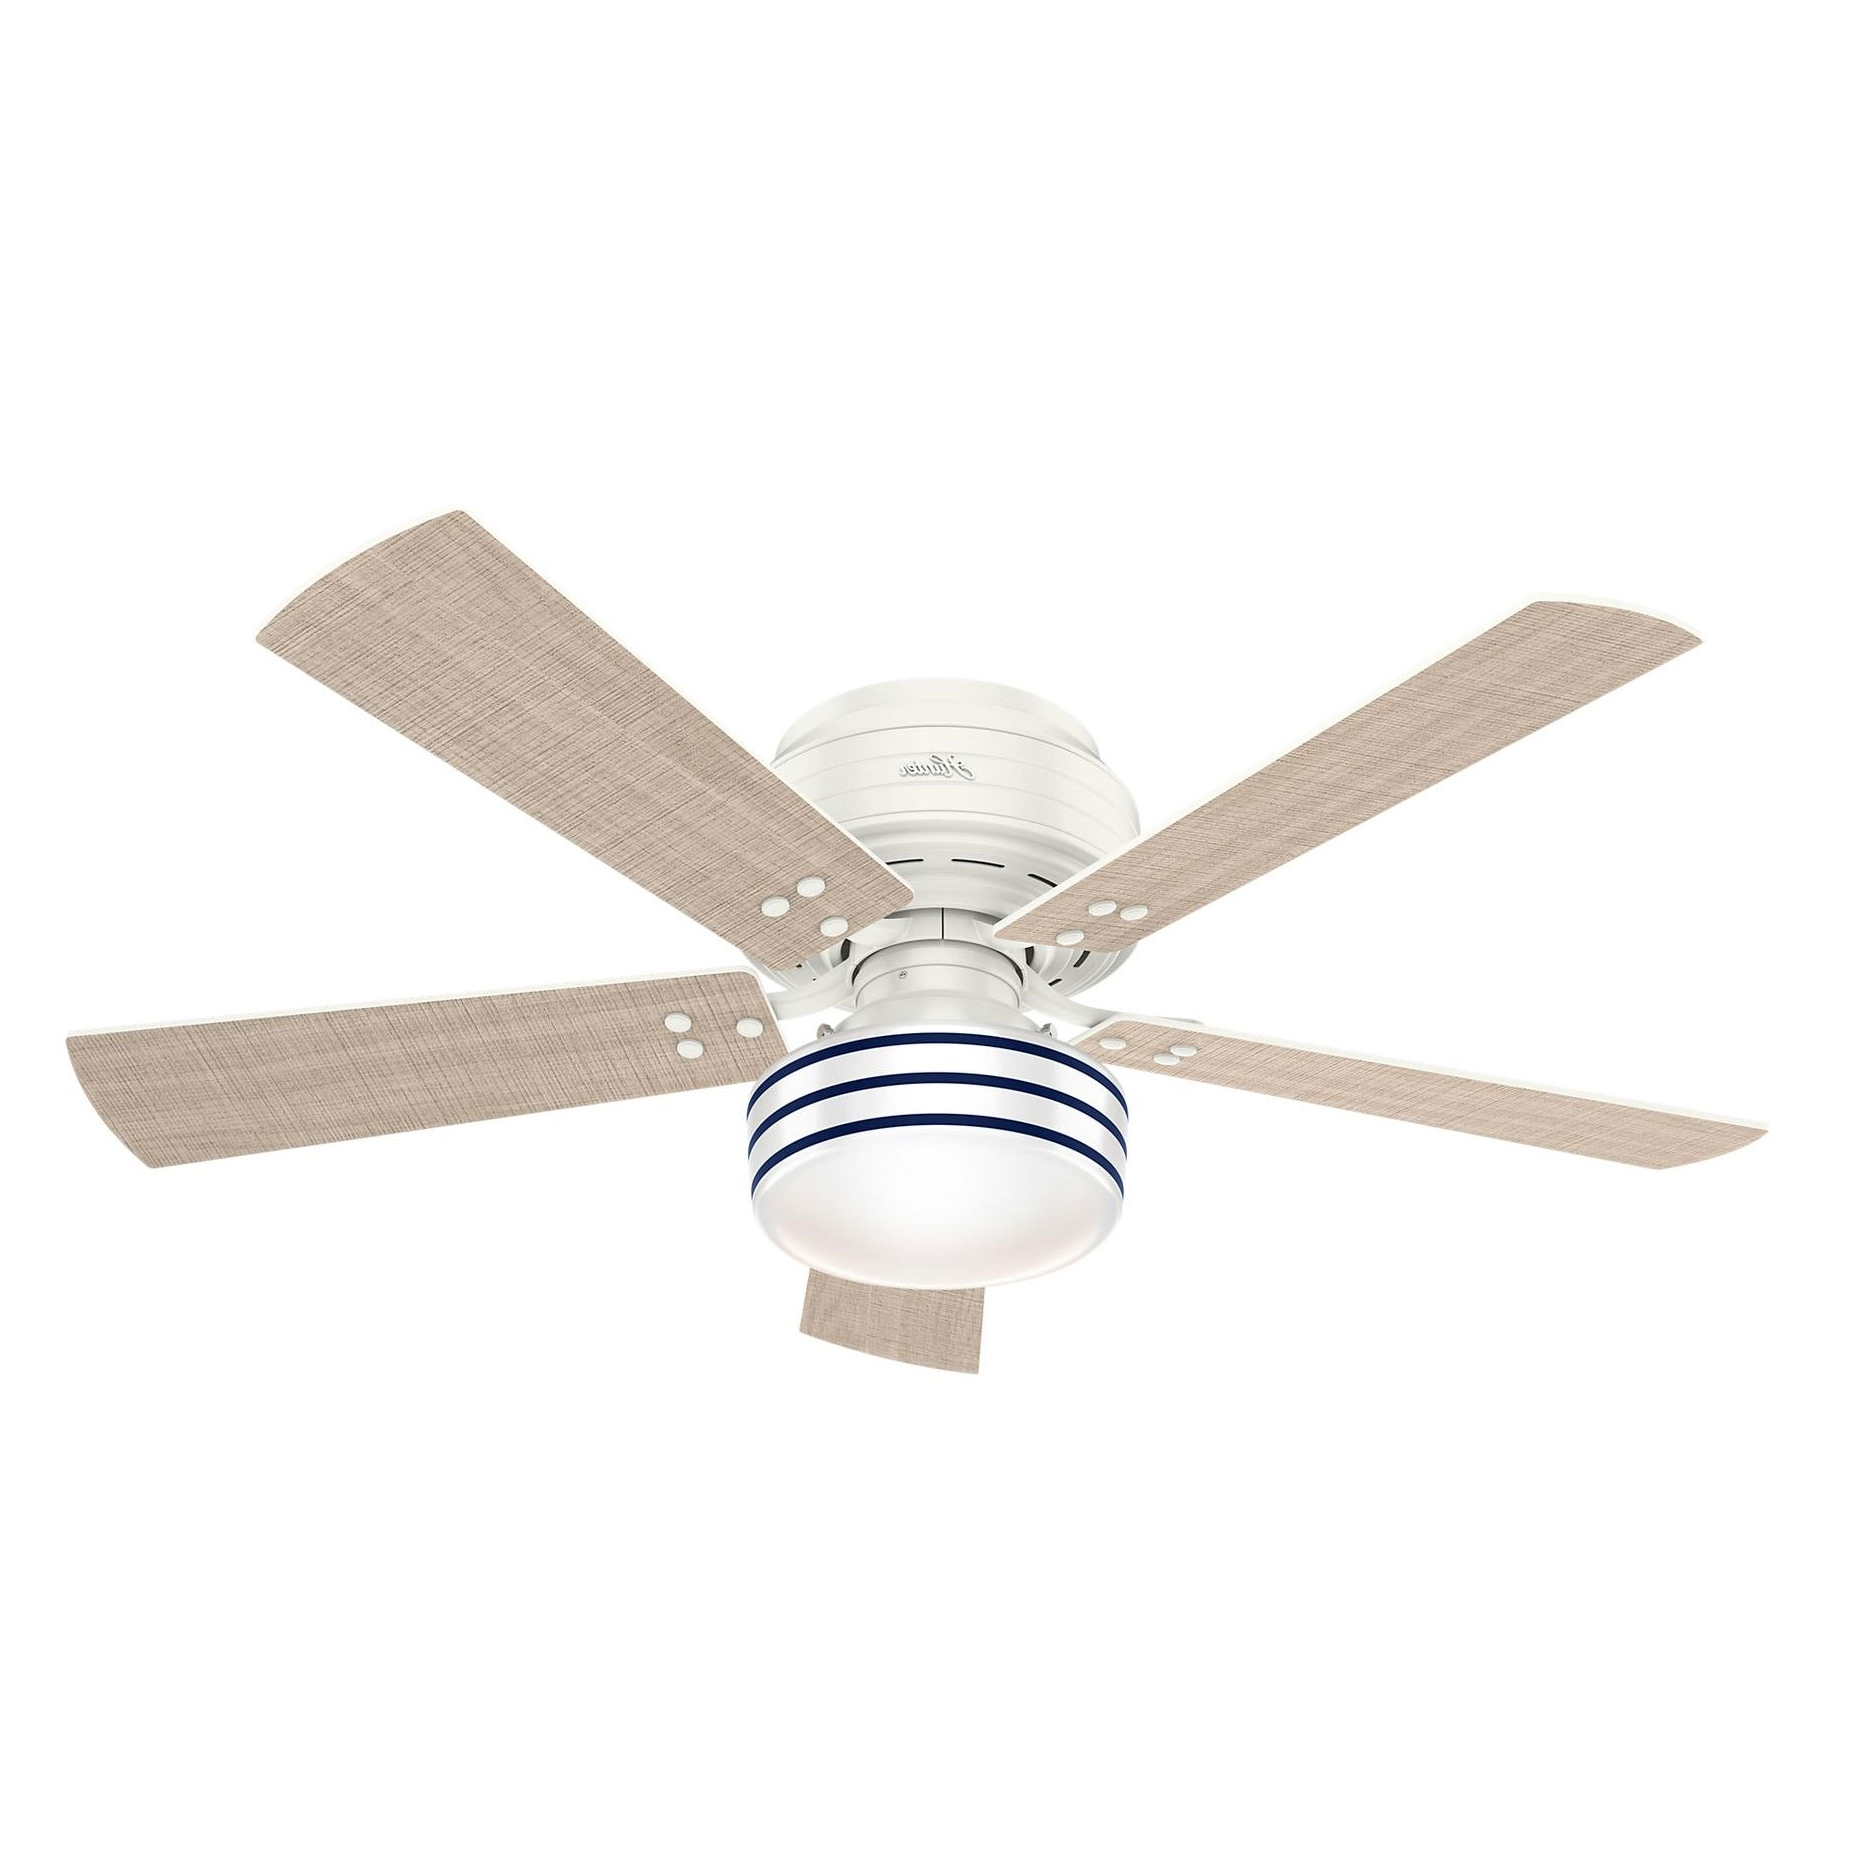 Cedar Key Low Profile Indoor/outdoor Ceiling Fan With Light Inside Newest Low Profile Outdoor Ceiling Fans With Lights (View 18 of 20)